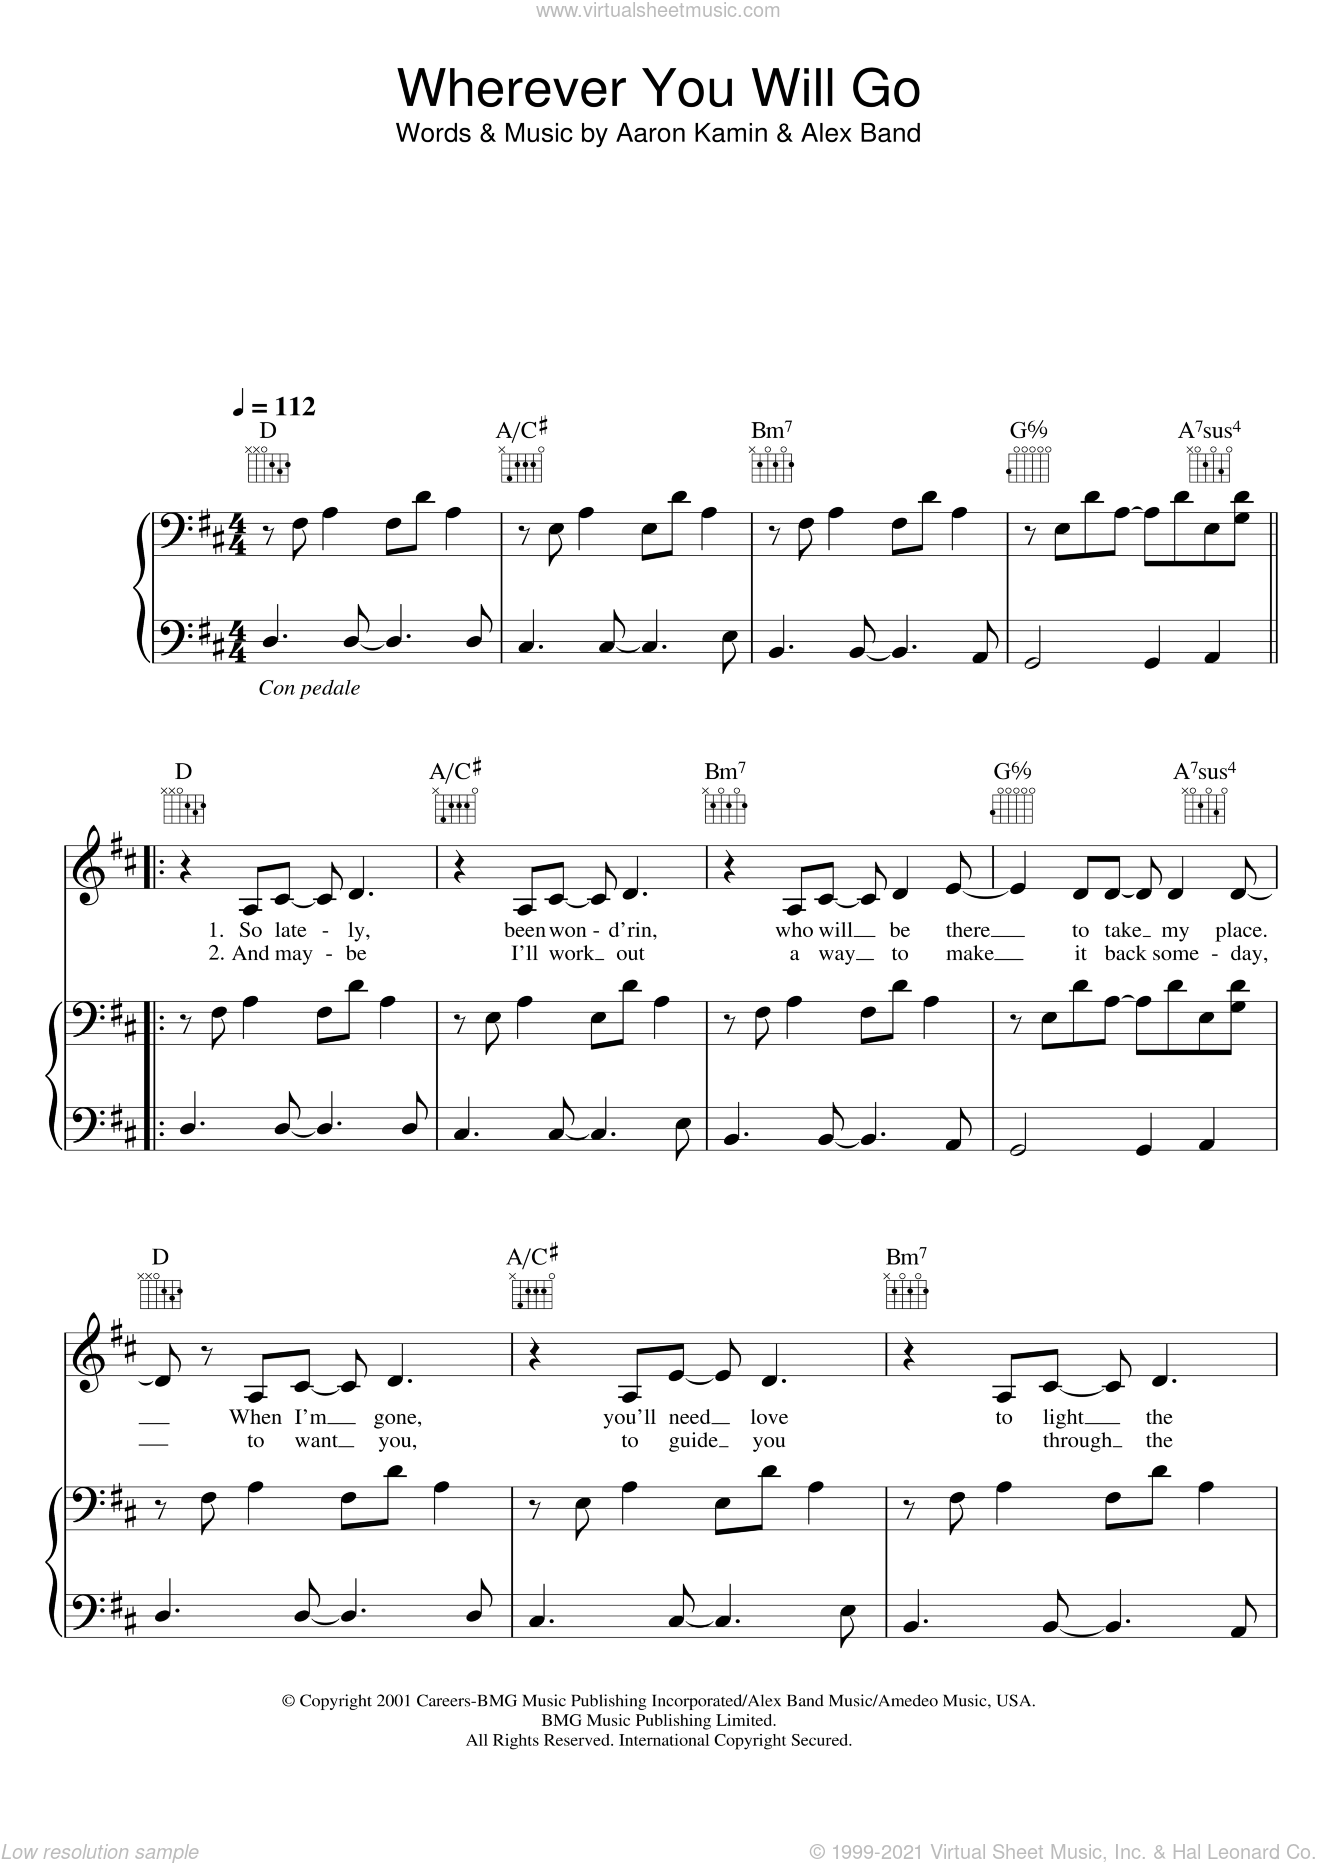 Wherever You Will Go sheet music for voice, piano or guitar by The Calling